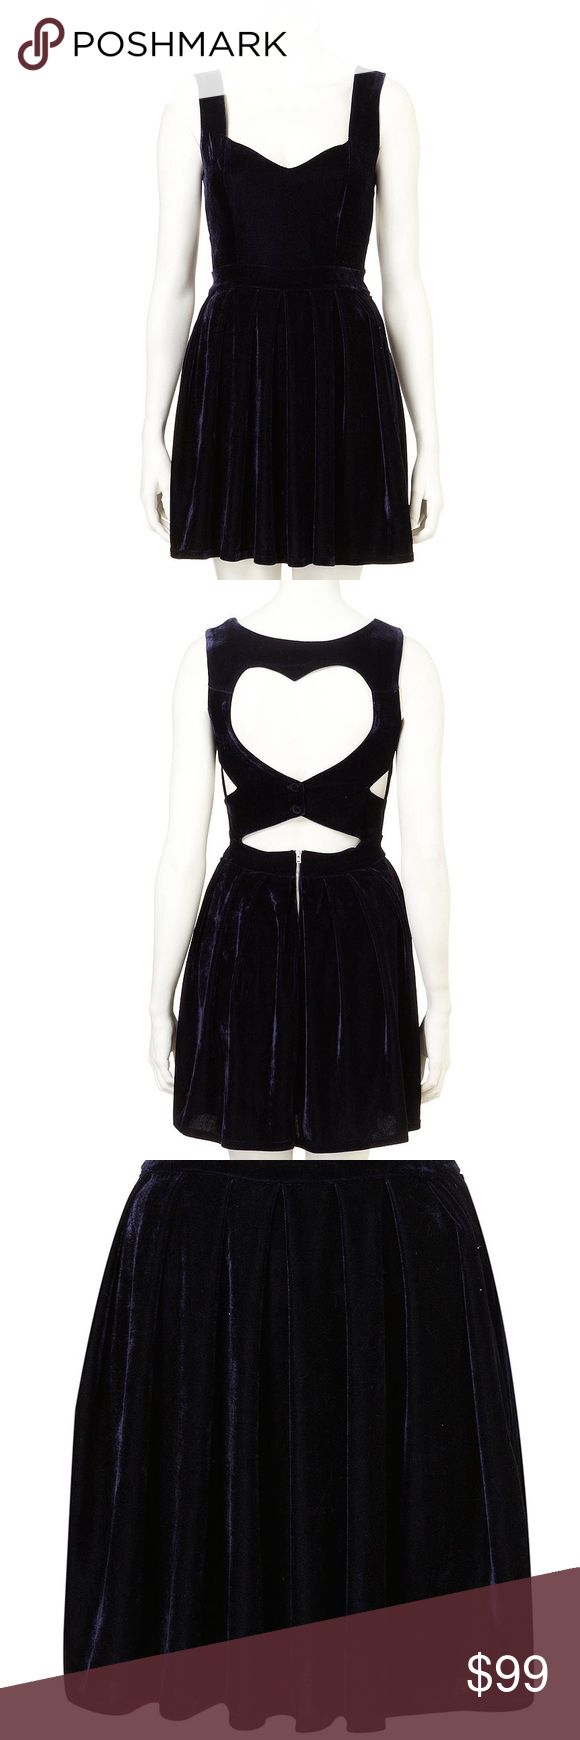 Dress Up TOPSHOP Navy Blue Velvet Heart Back Dress Used in Excellent Condition/ No Trades/ No Offline Transactions/ Smoke & Pet Free Home/ Please Ask Questions!/ Like what you see but the price too high? Make an offer!/ offers on bundles are welcome! Topshop Dresses Mini